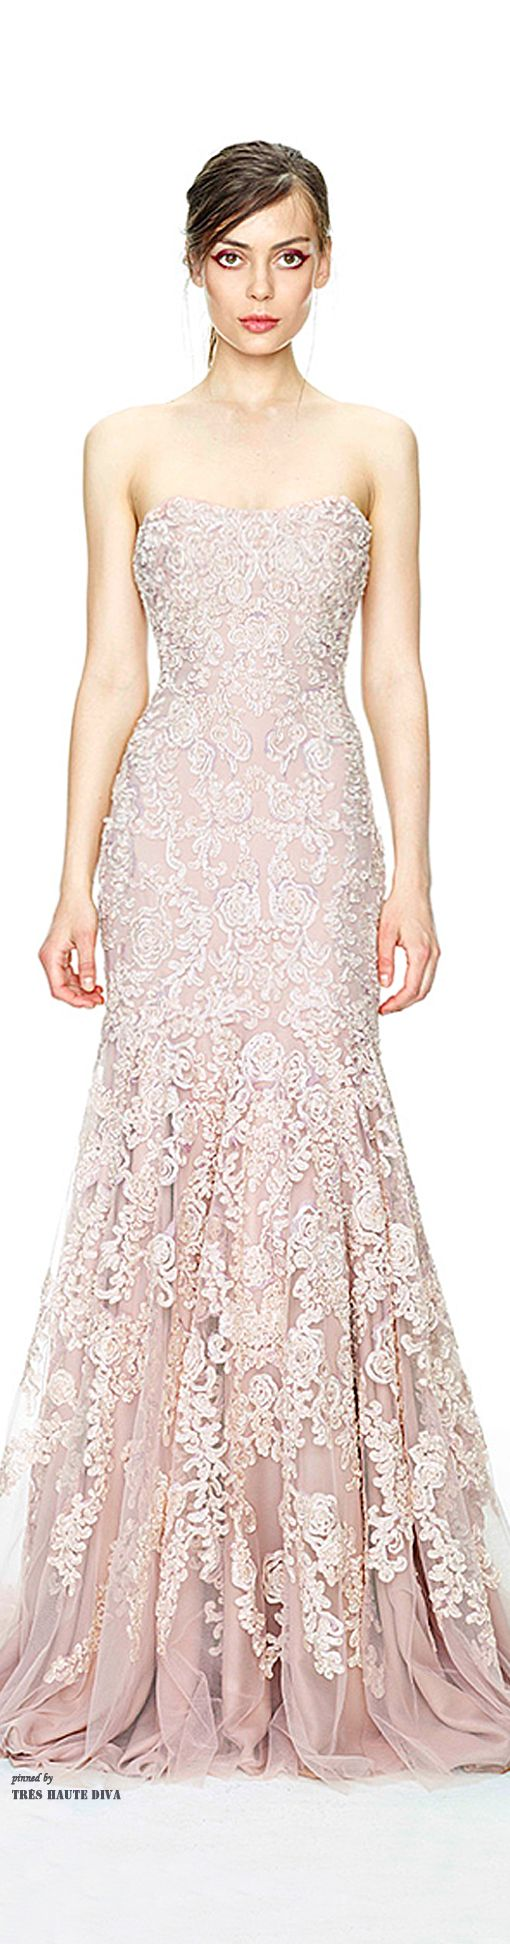 """Marchesa Resort 2015  (^.^) Thanks, Pinterest Pinners, for stopping by, viewing, re-pinning,  following my boards.  Have a beautiful day! ^..^ and """"Feel free to share on Pinterest ^..^  #women #topfashion #fashionandclothingblog"""